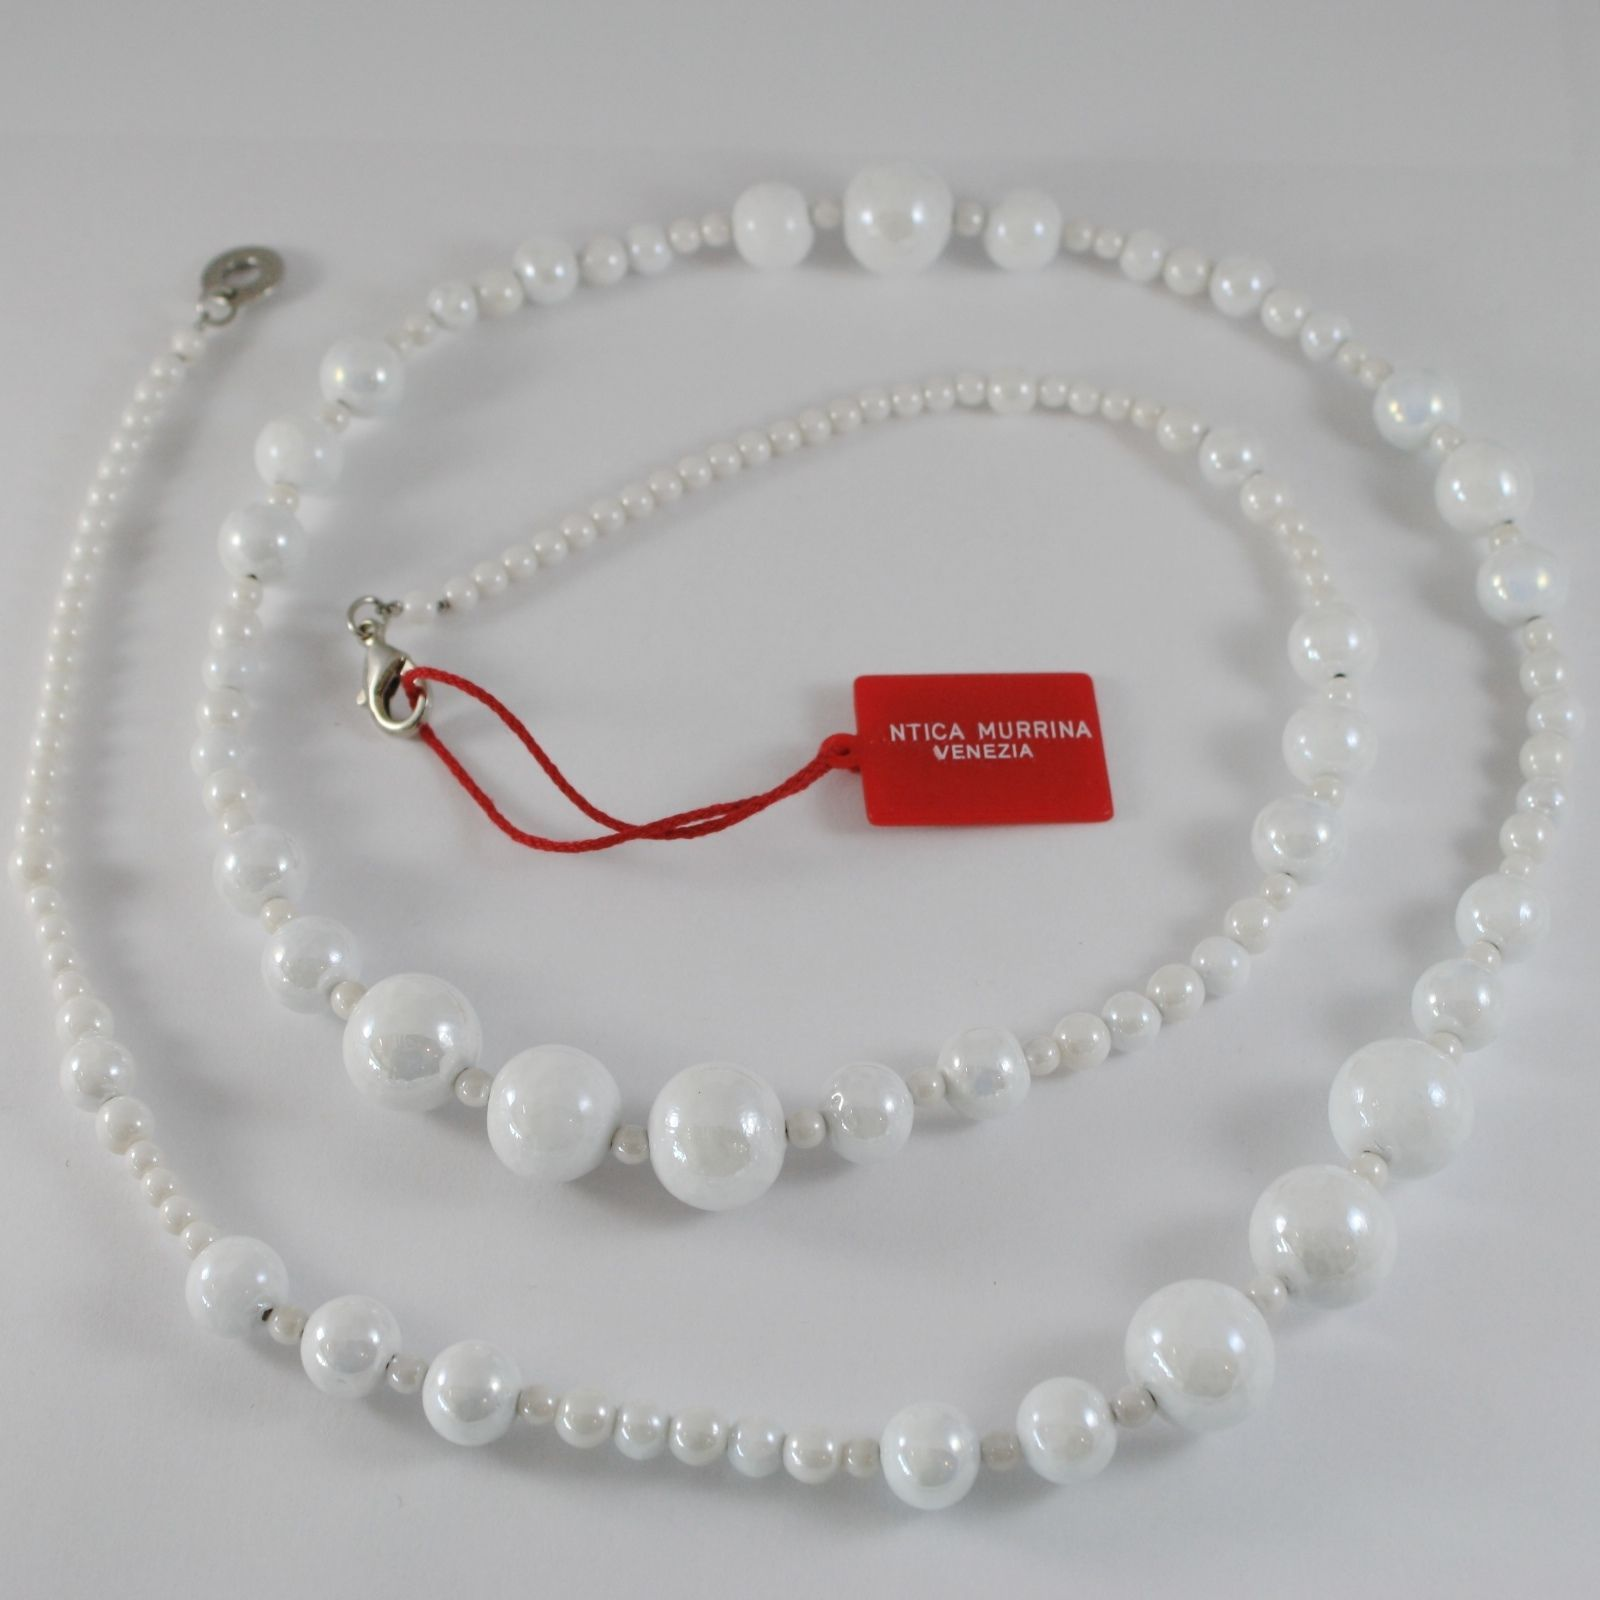 ANTICA MURRINA VENEZIA WHITE SPHERE LONG NECKLACE, PERLEADI, 100 CM, 36.4 INCHES